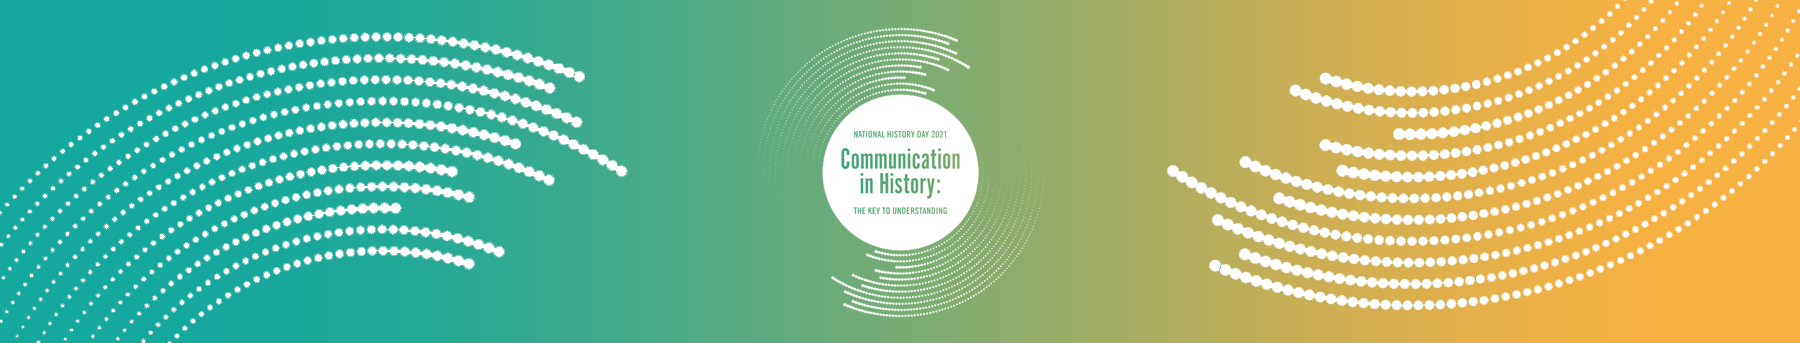 NHD LOGO for 2021 Competition theme of Communication in History